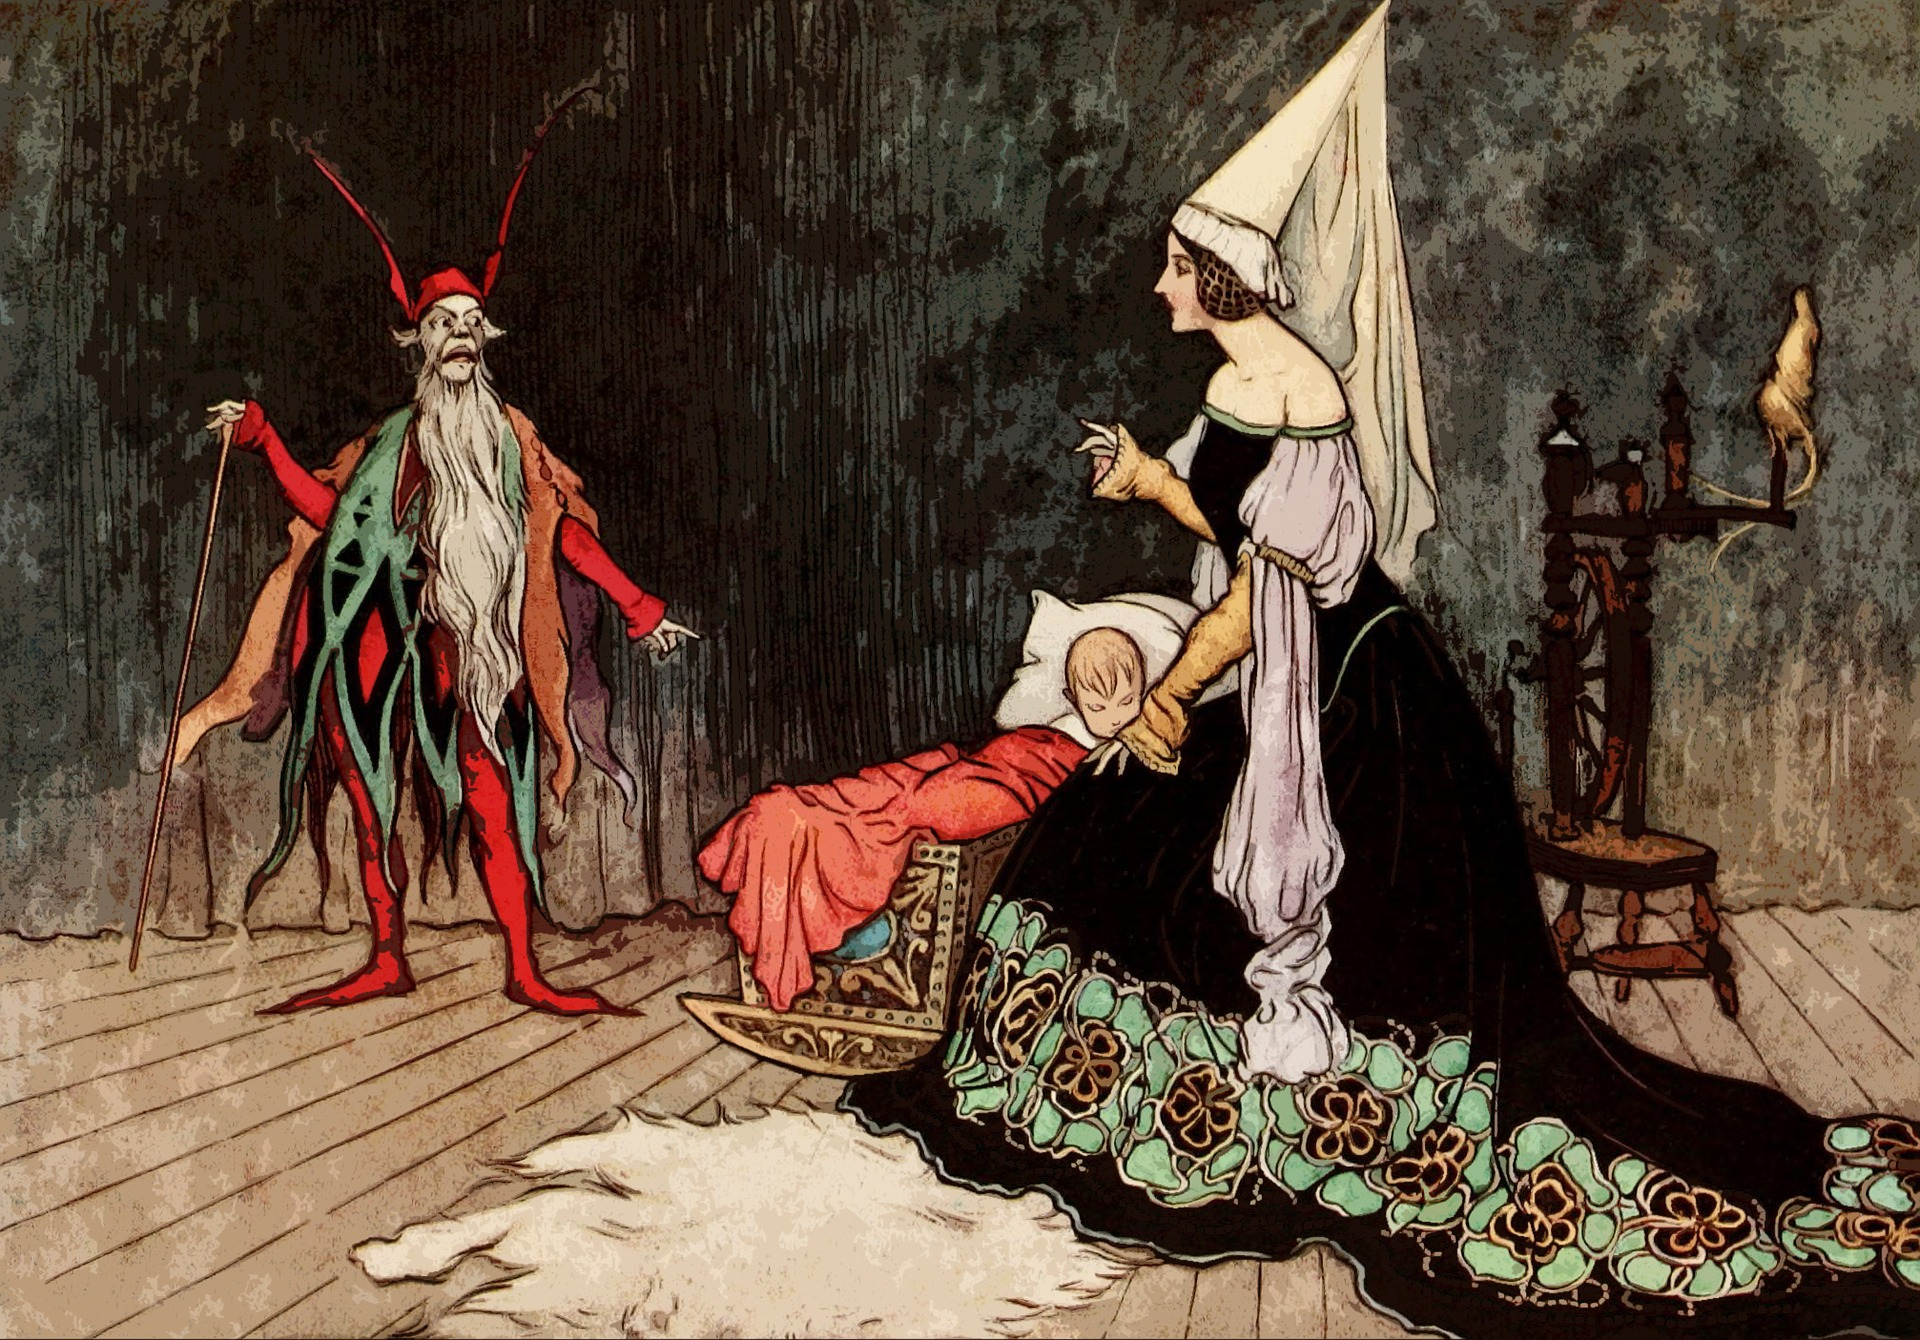 Illustration of a fairy tale-esque scene: a man dressed in red with a beard gestures to a child, while a woman in a long black flowery dress and a princess cone hat speaks back to him